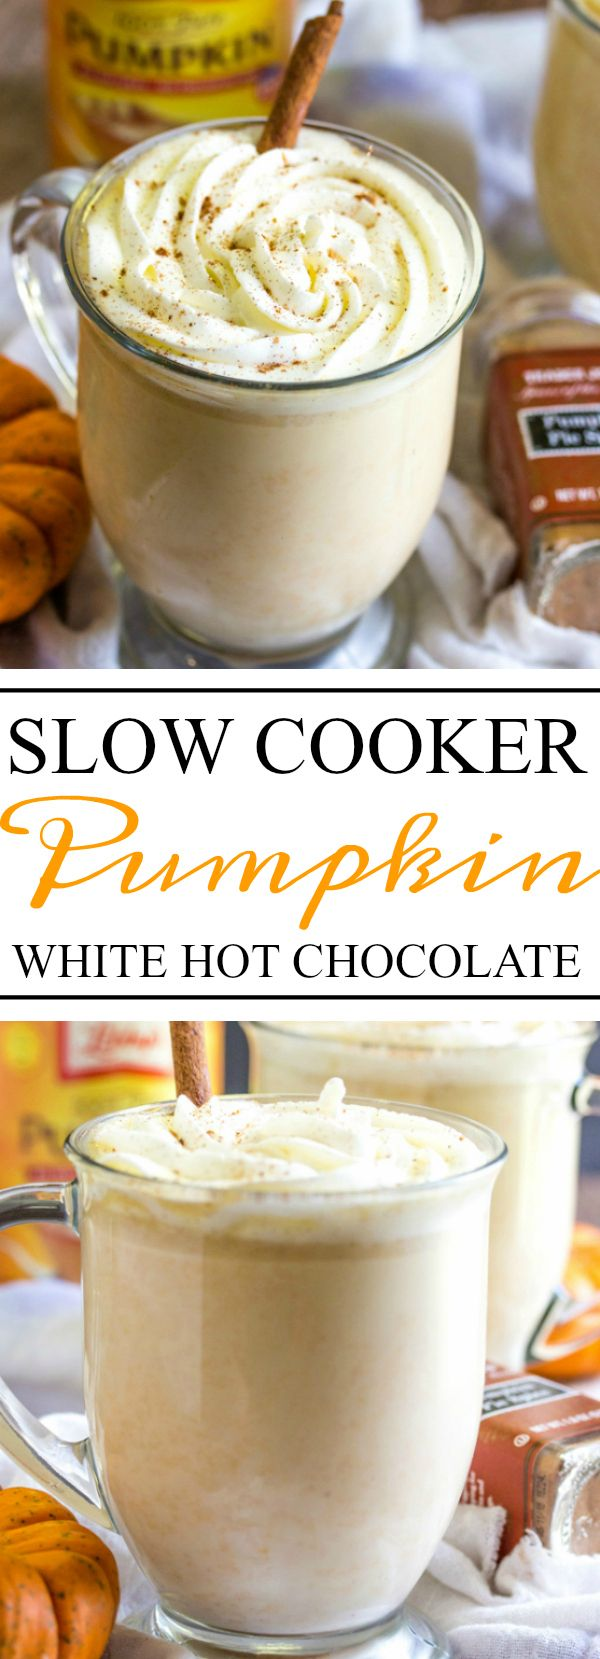 Slow Cooker Pumpkin White Hot Chocolate a delicious treat for those  cool Fall nights! #fallrecipesdinner